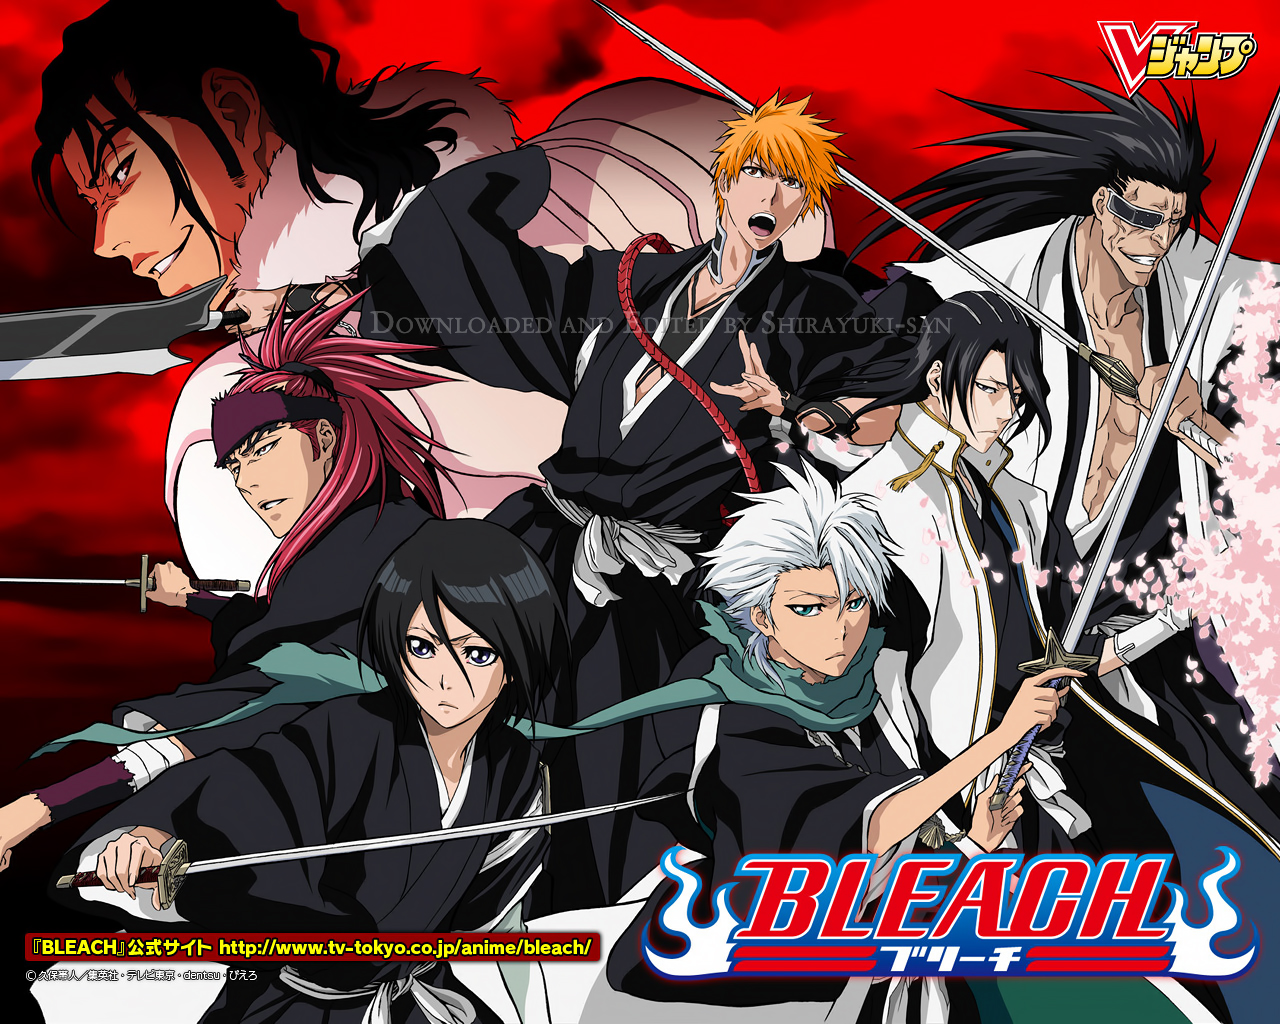 Anime Characters From Bleach : Bleach characters anime wallpaper  fanpop